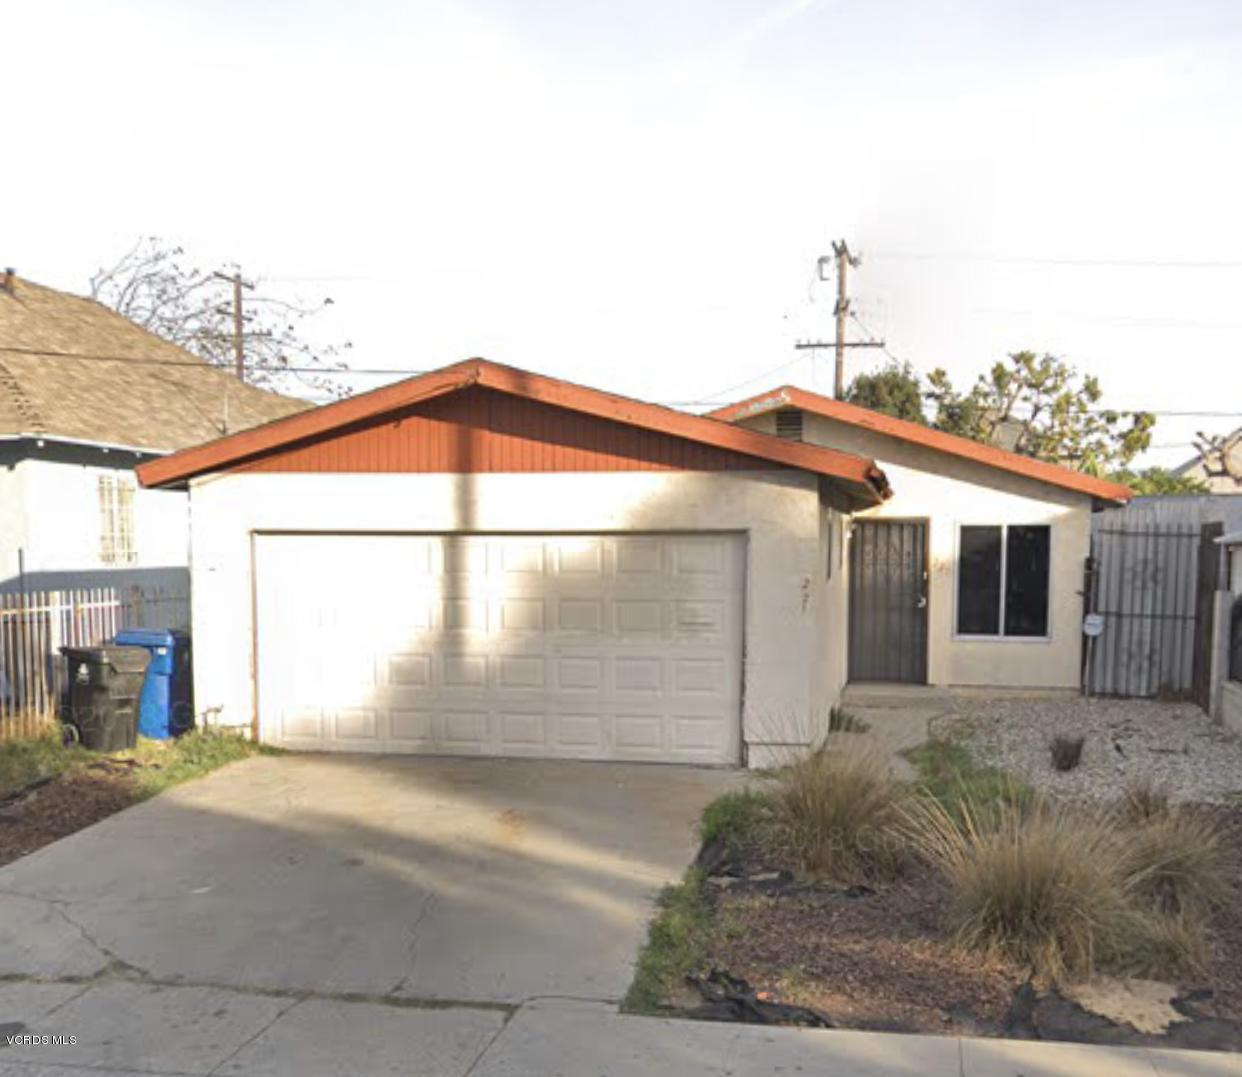 221 47TH, Los Angeles (City), CA 90037 - 4 Bedroom 2 Bath Home